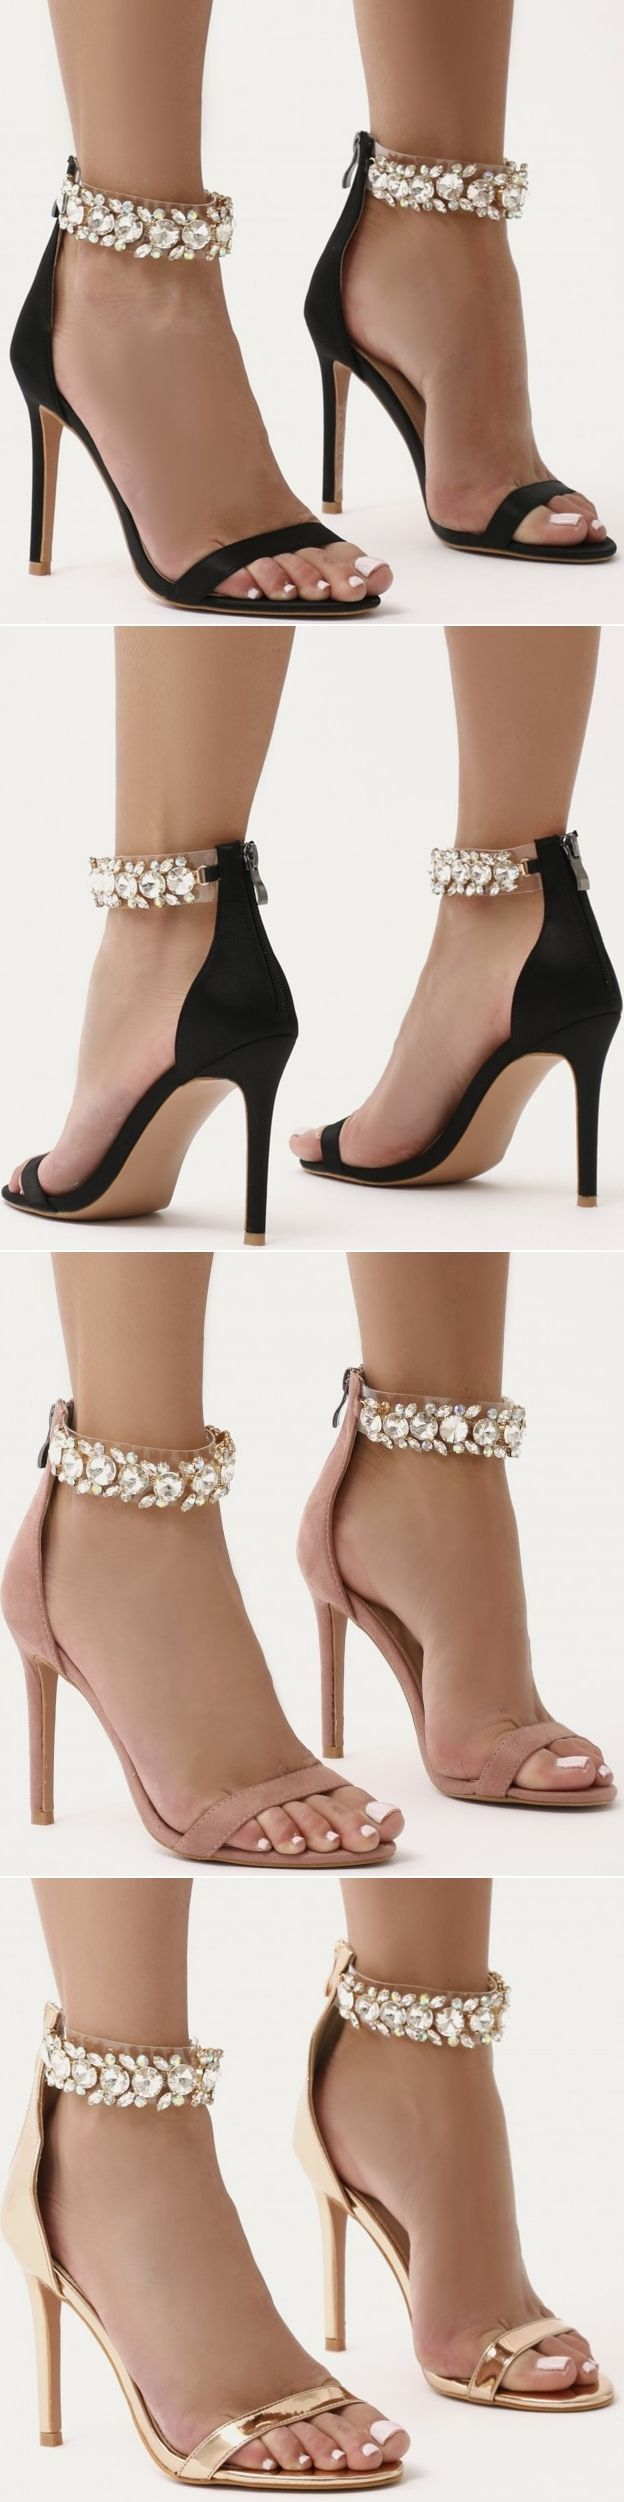 Encrust your ankle with embellishment in a classic barely there. These stiletto high heels feature jewel finished clear perspex ankle straps and simple front toe strap. Put your best foot forward and let your outfit shine. Pair with block colour cold shou